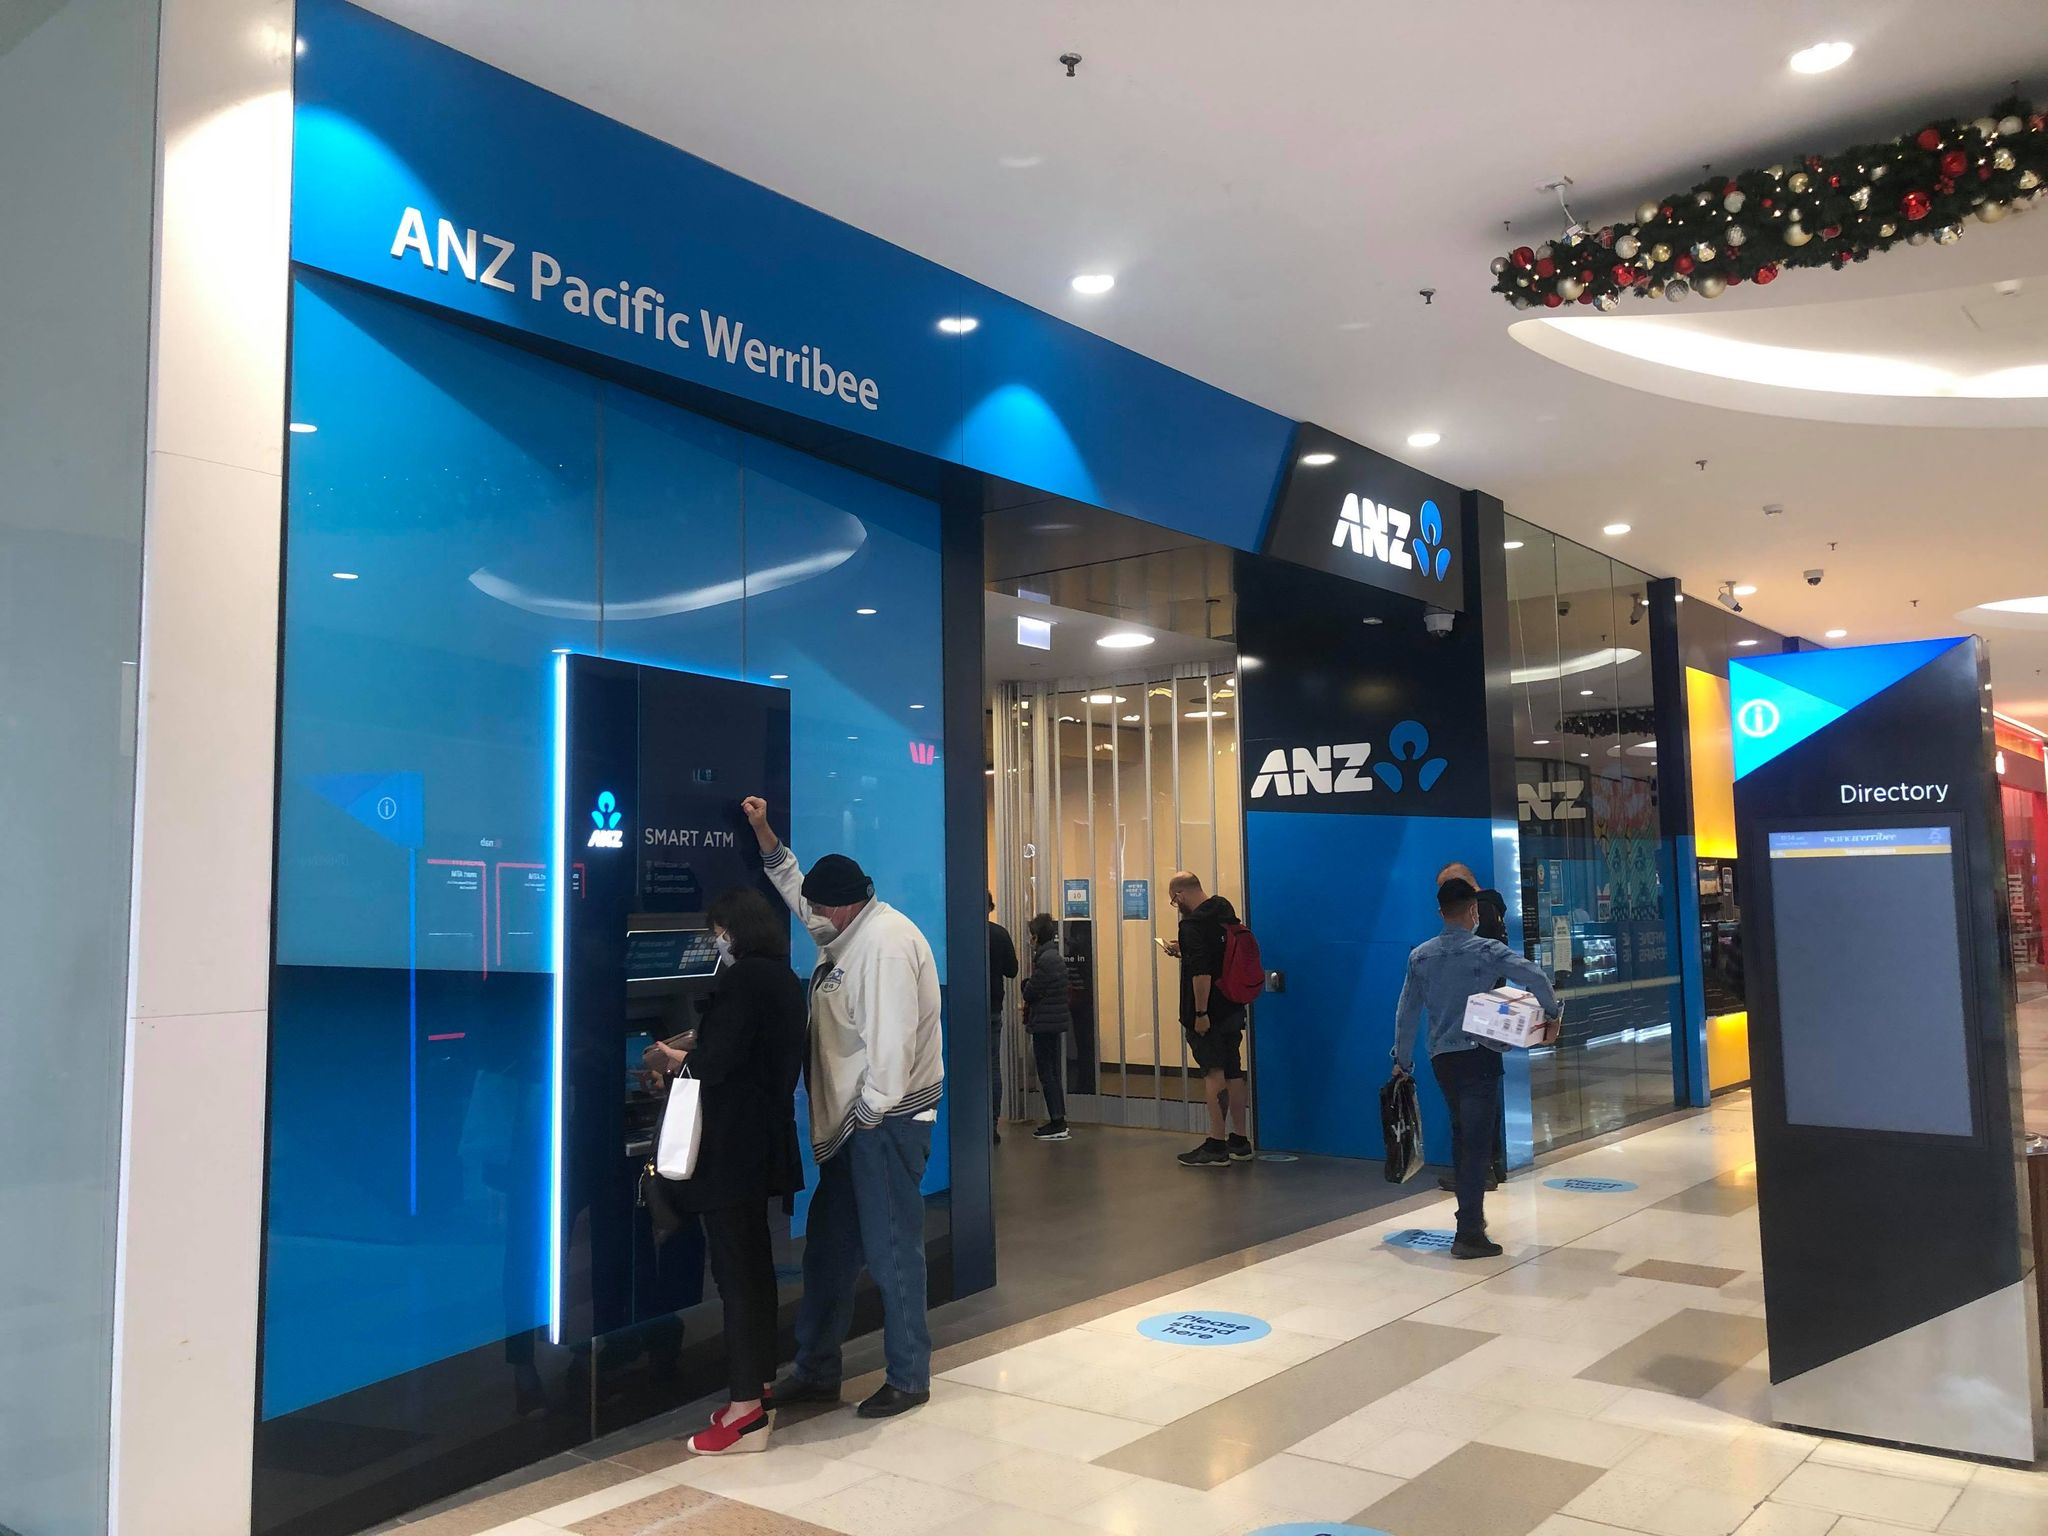 pacific werribee december 2020 anz